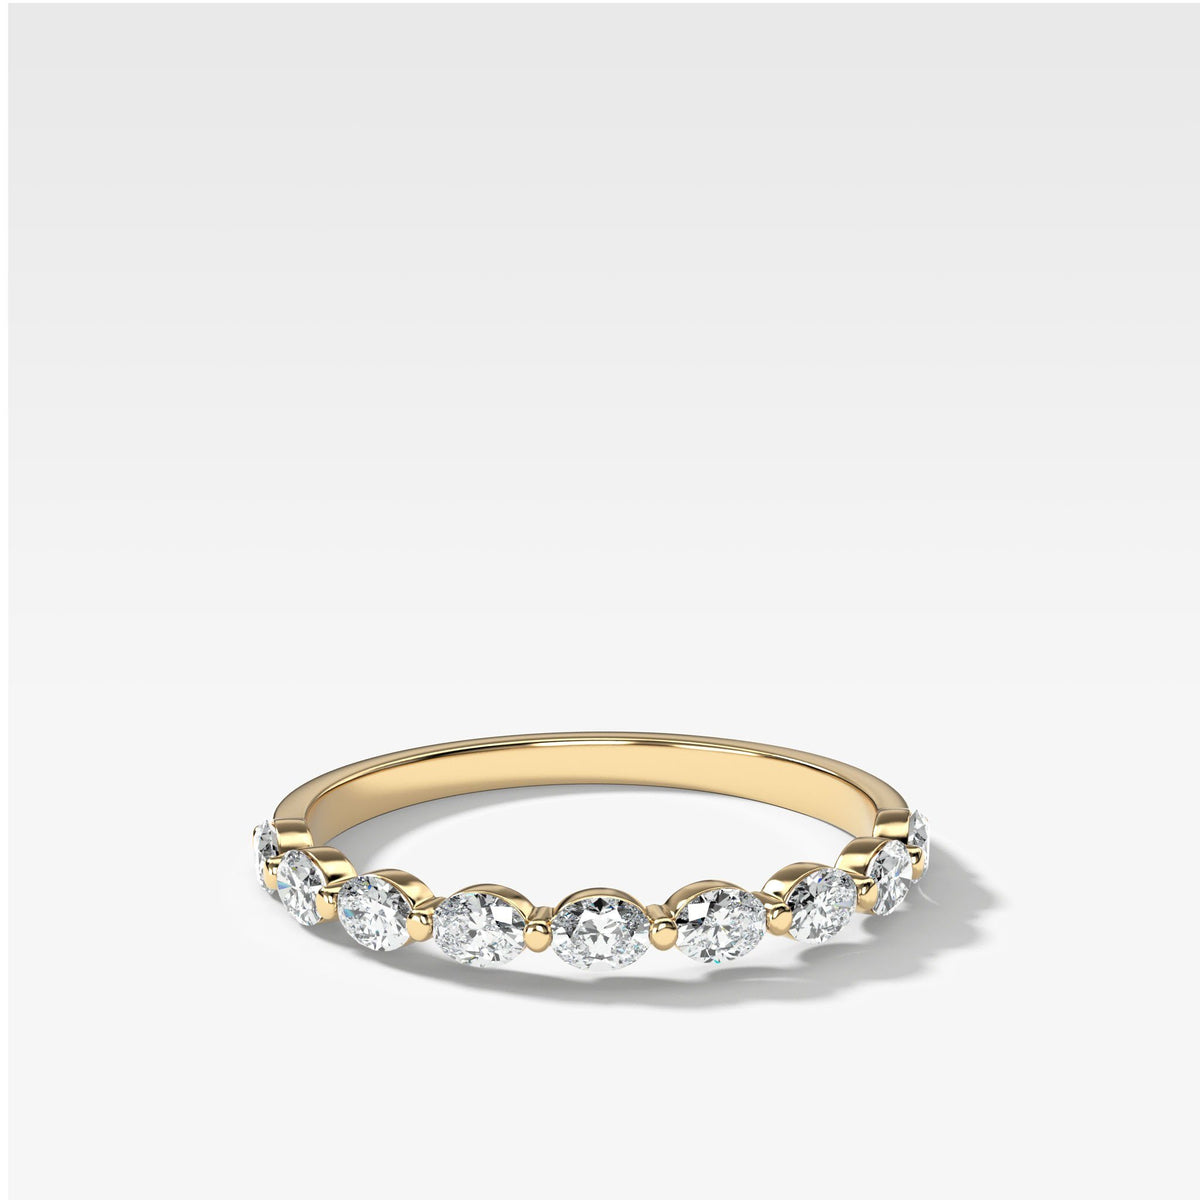 Oval Interstellar Wedding Band In Yellow Gold By Good Stone